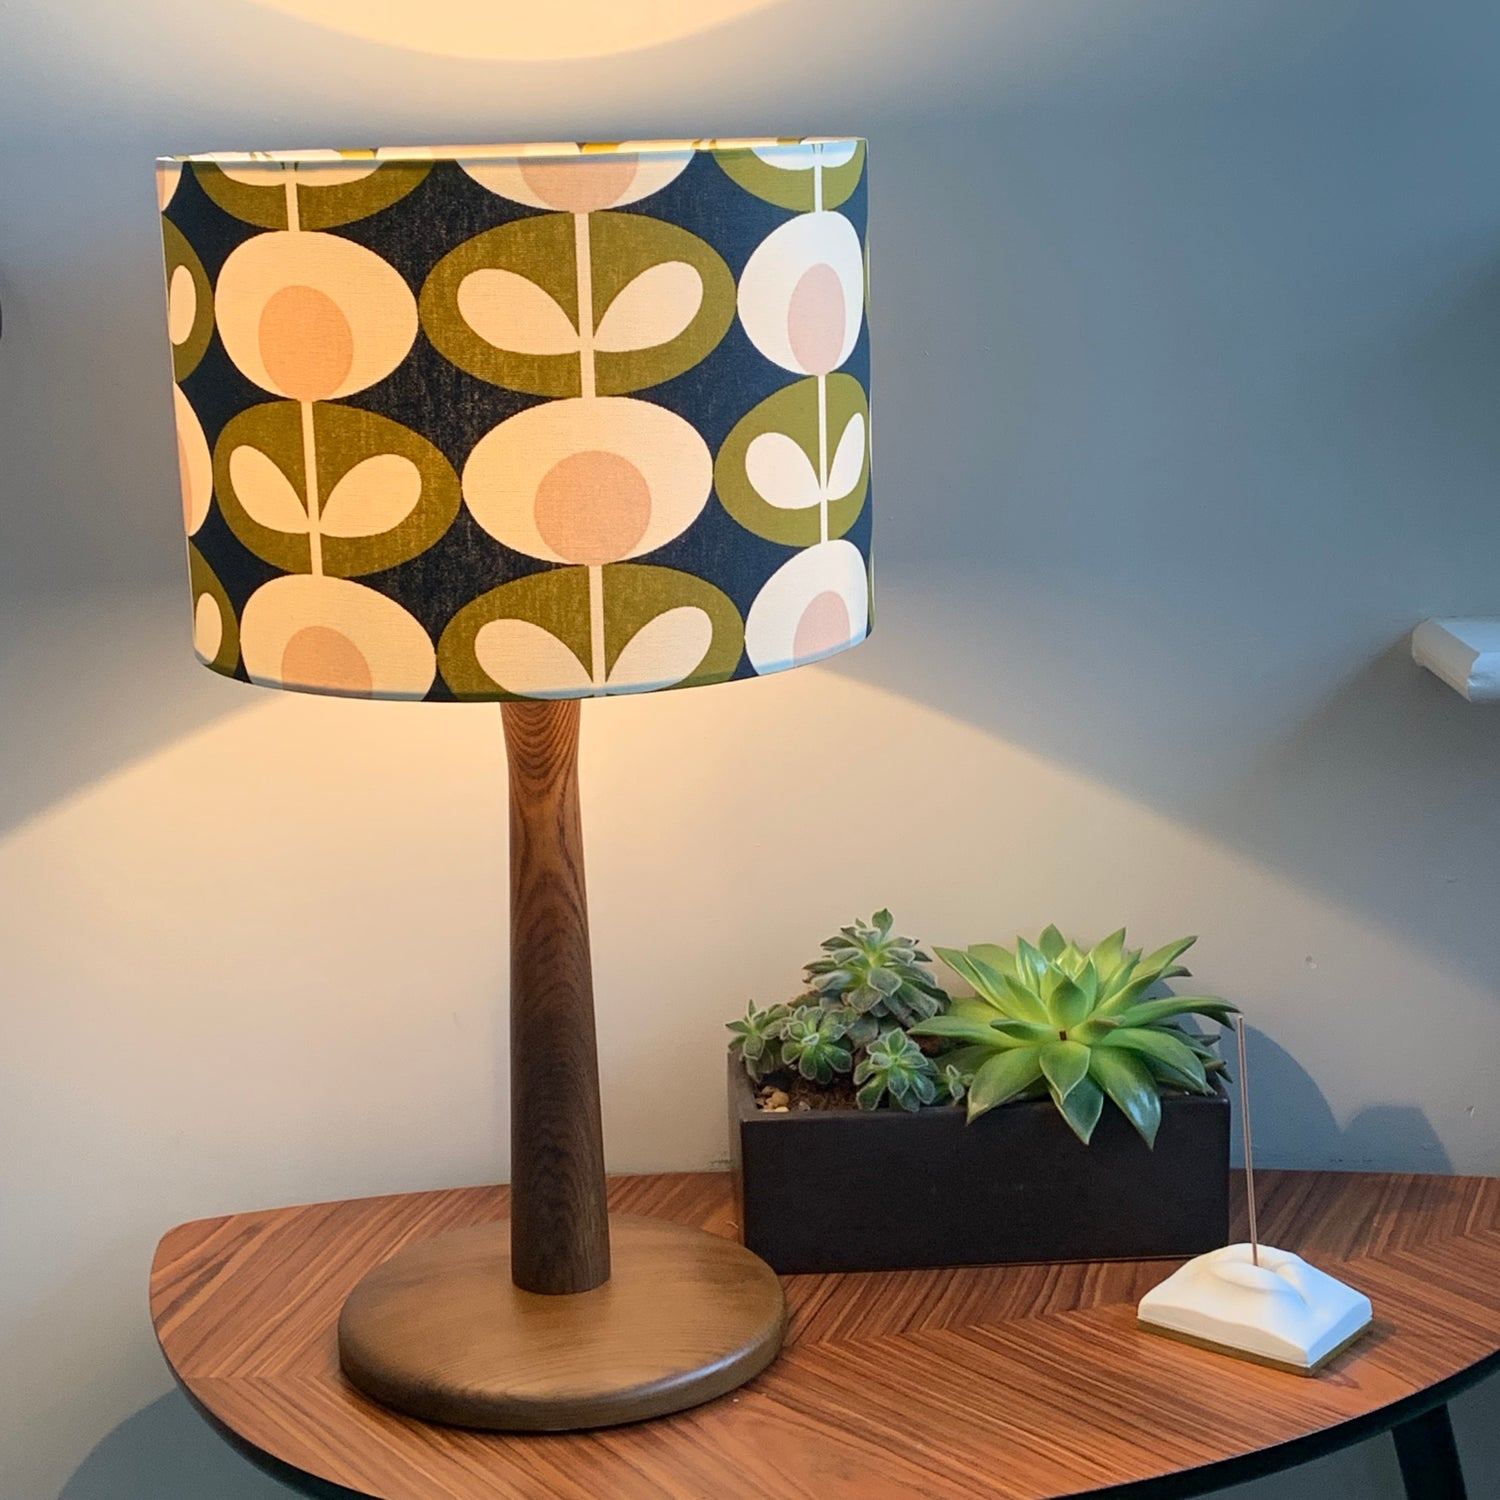 Image of Orla Kiely Oval Flower Seagrass Shade